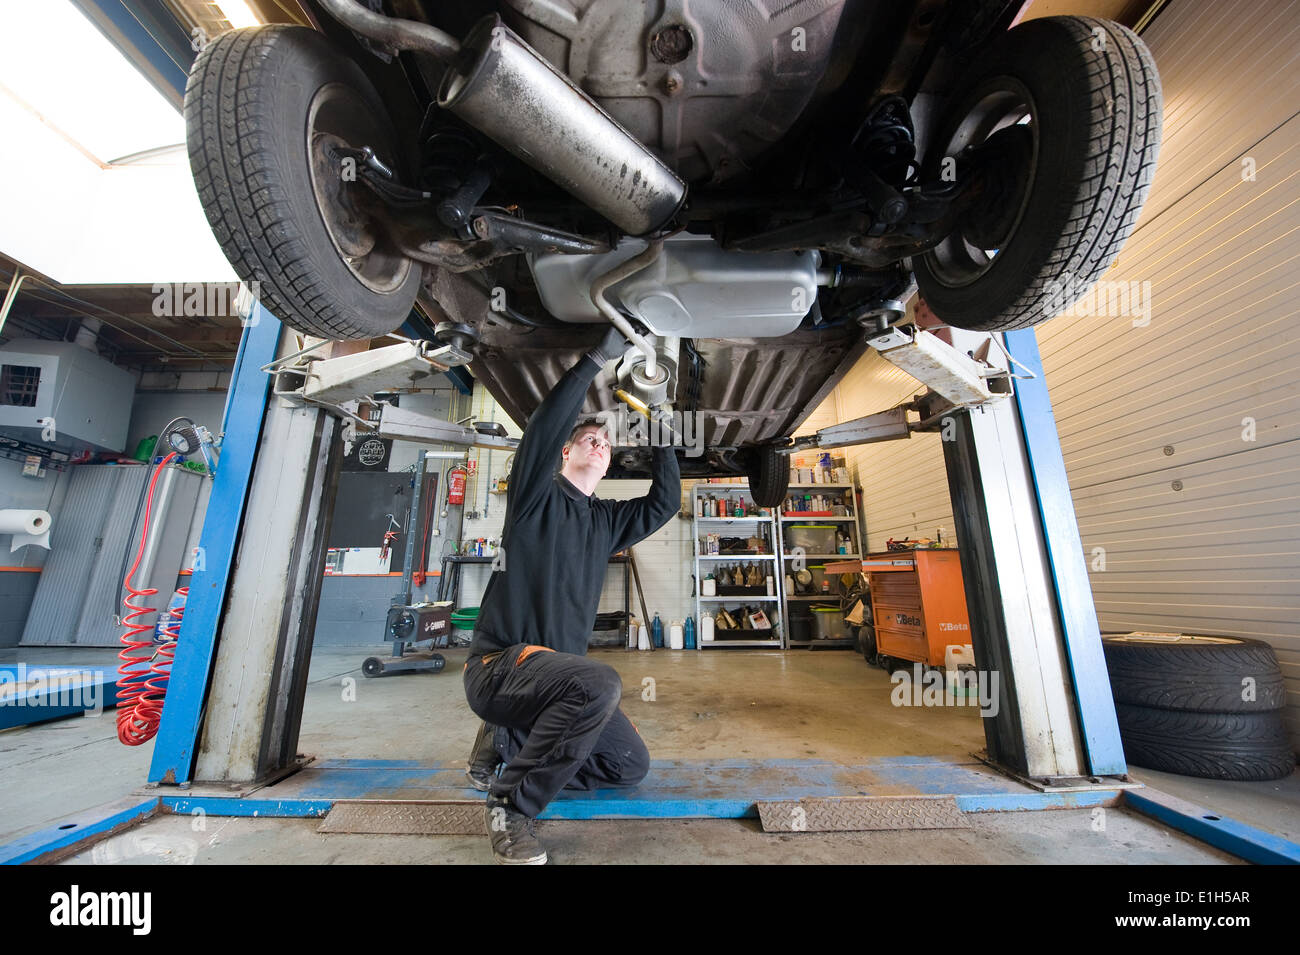 A mechanic is checking the exhaust of a car who is lifted up in a repair service station. - Stock Image